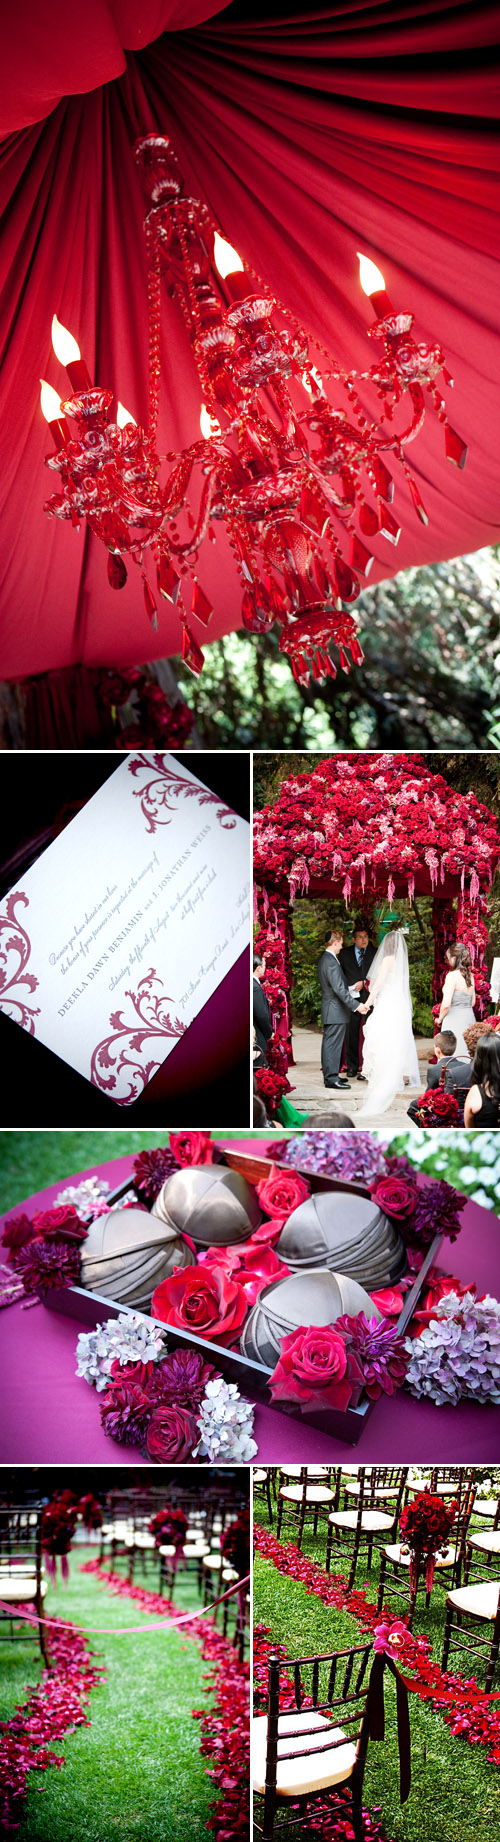 Luxurious vintage meets modern, red jewel tone wedding ceremony designed by Kristin Banta Events, images by David Michael Photography